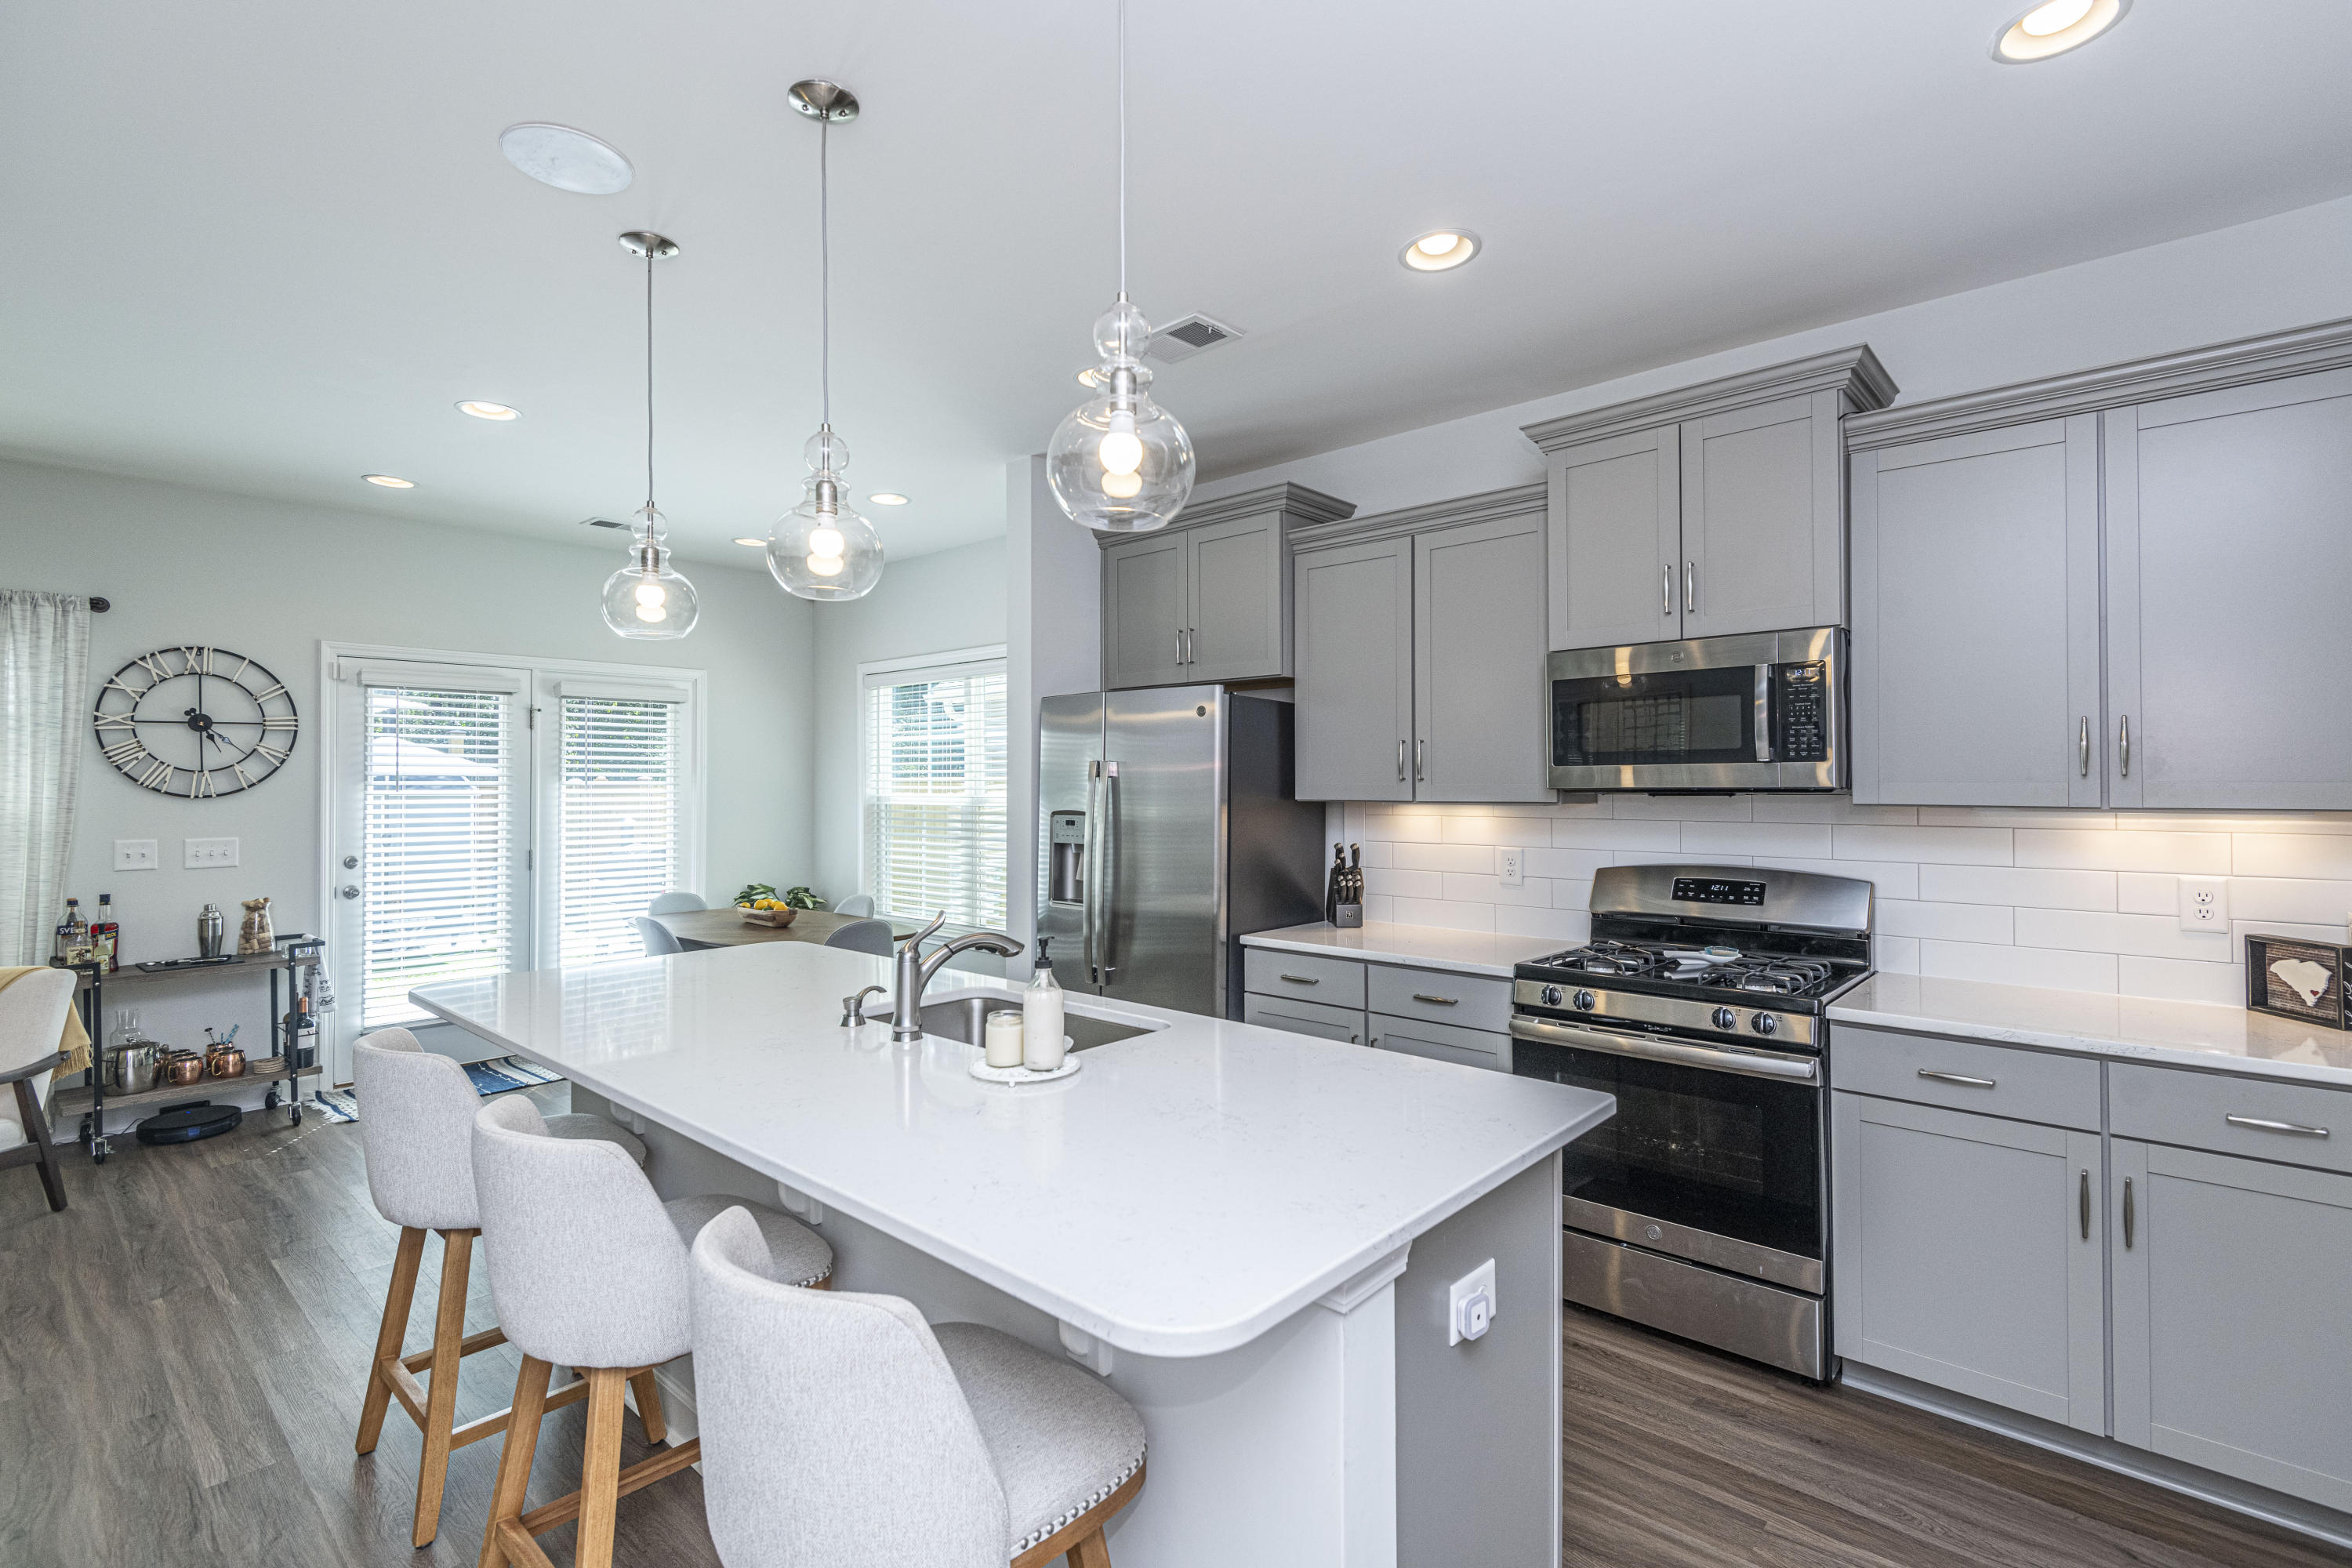 The Oaks at St Johns Crossing Homes For Sale - 1692 Emmets, Johns Island, SC - 4